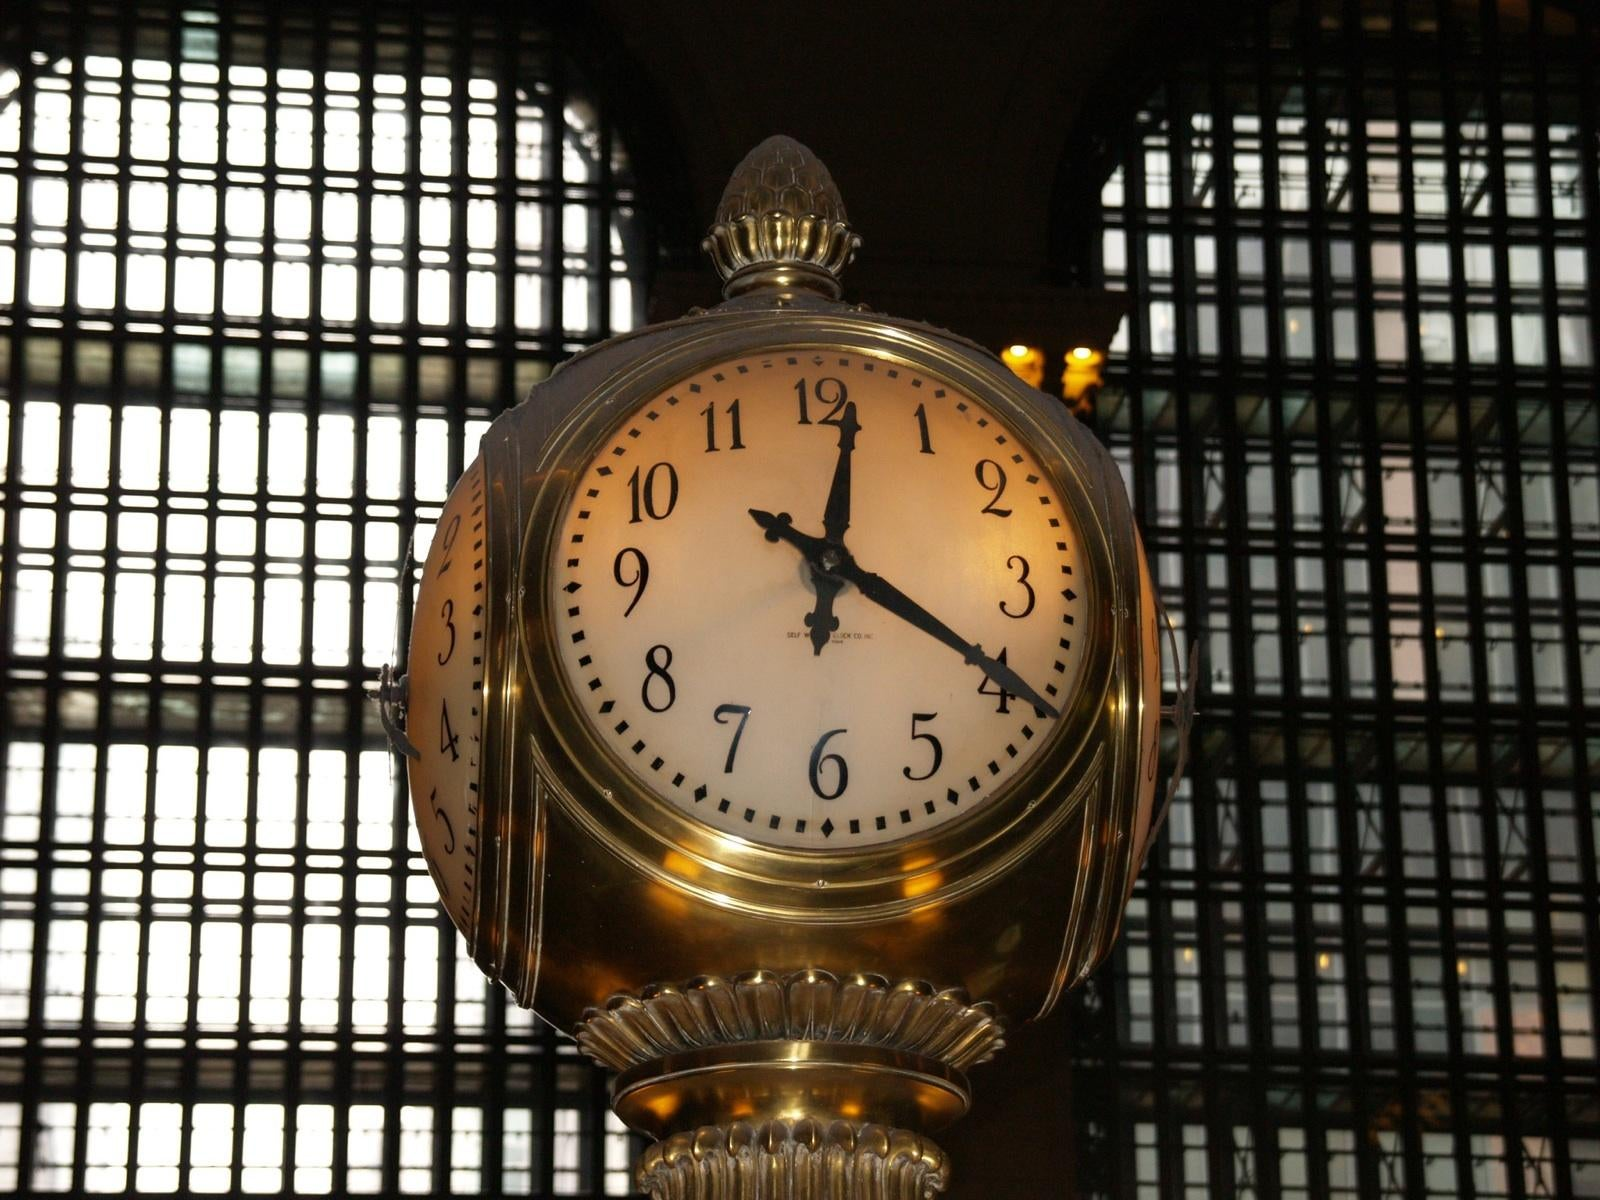 Reloj en Grand Central Station